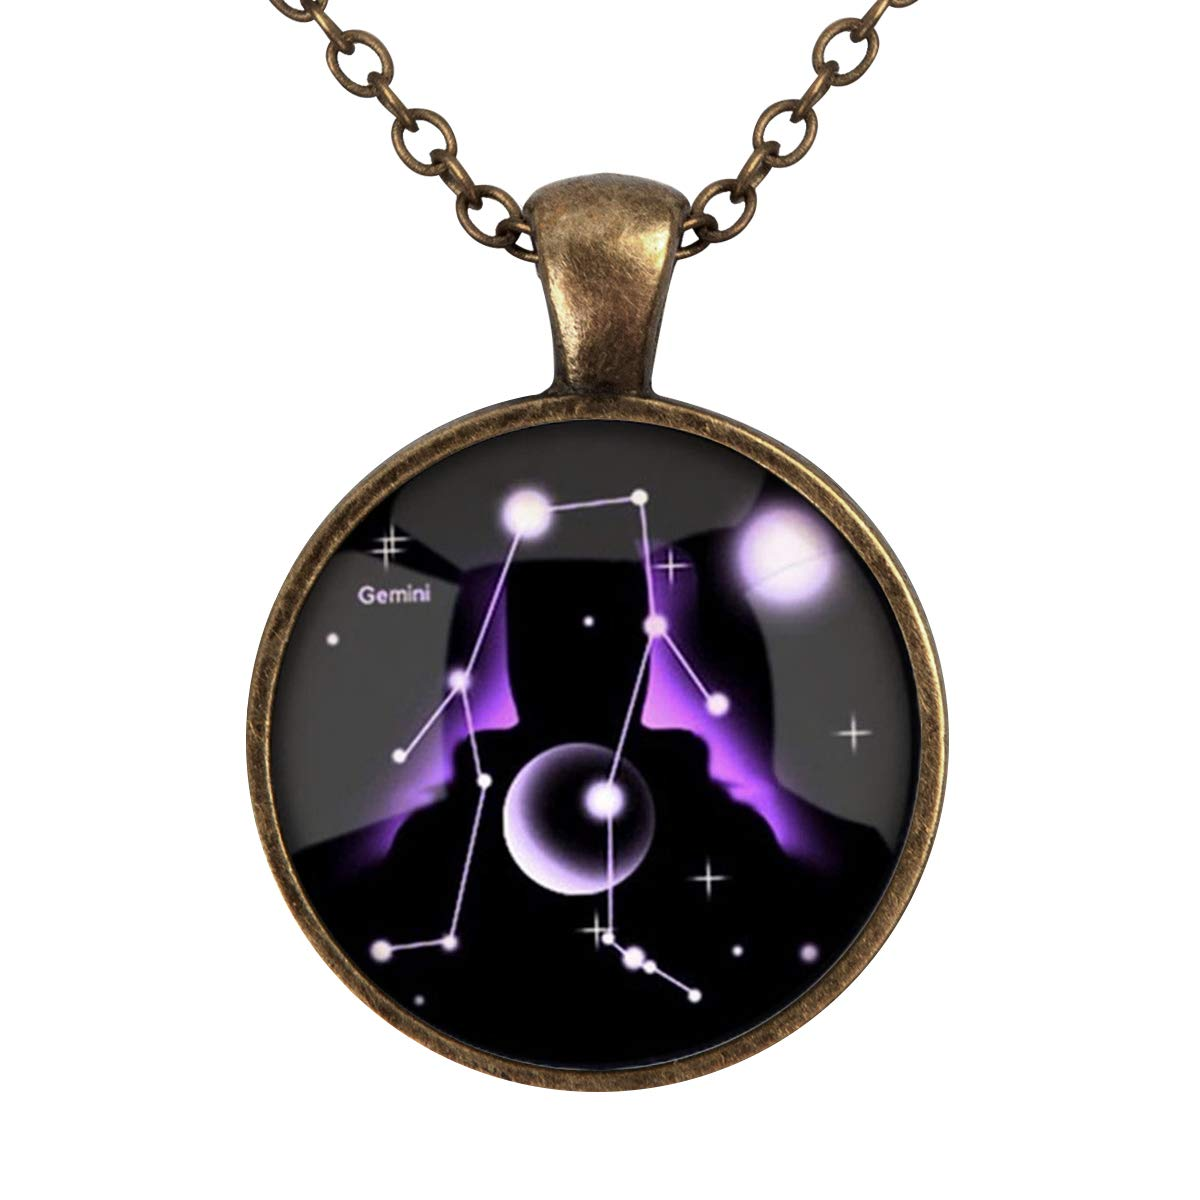 Lightrain 12 Constellations Gemini Pendant Necklace Vintage Bronze Chain Statement Necklace Handmade Jewelry Gifts